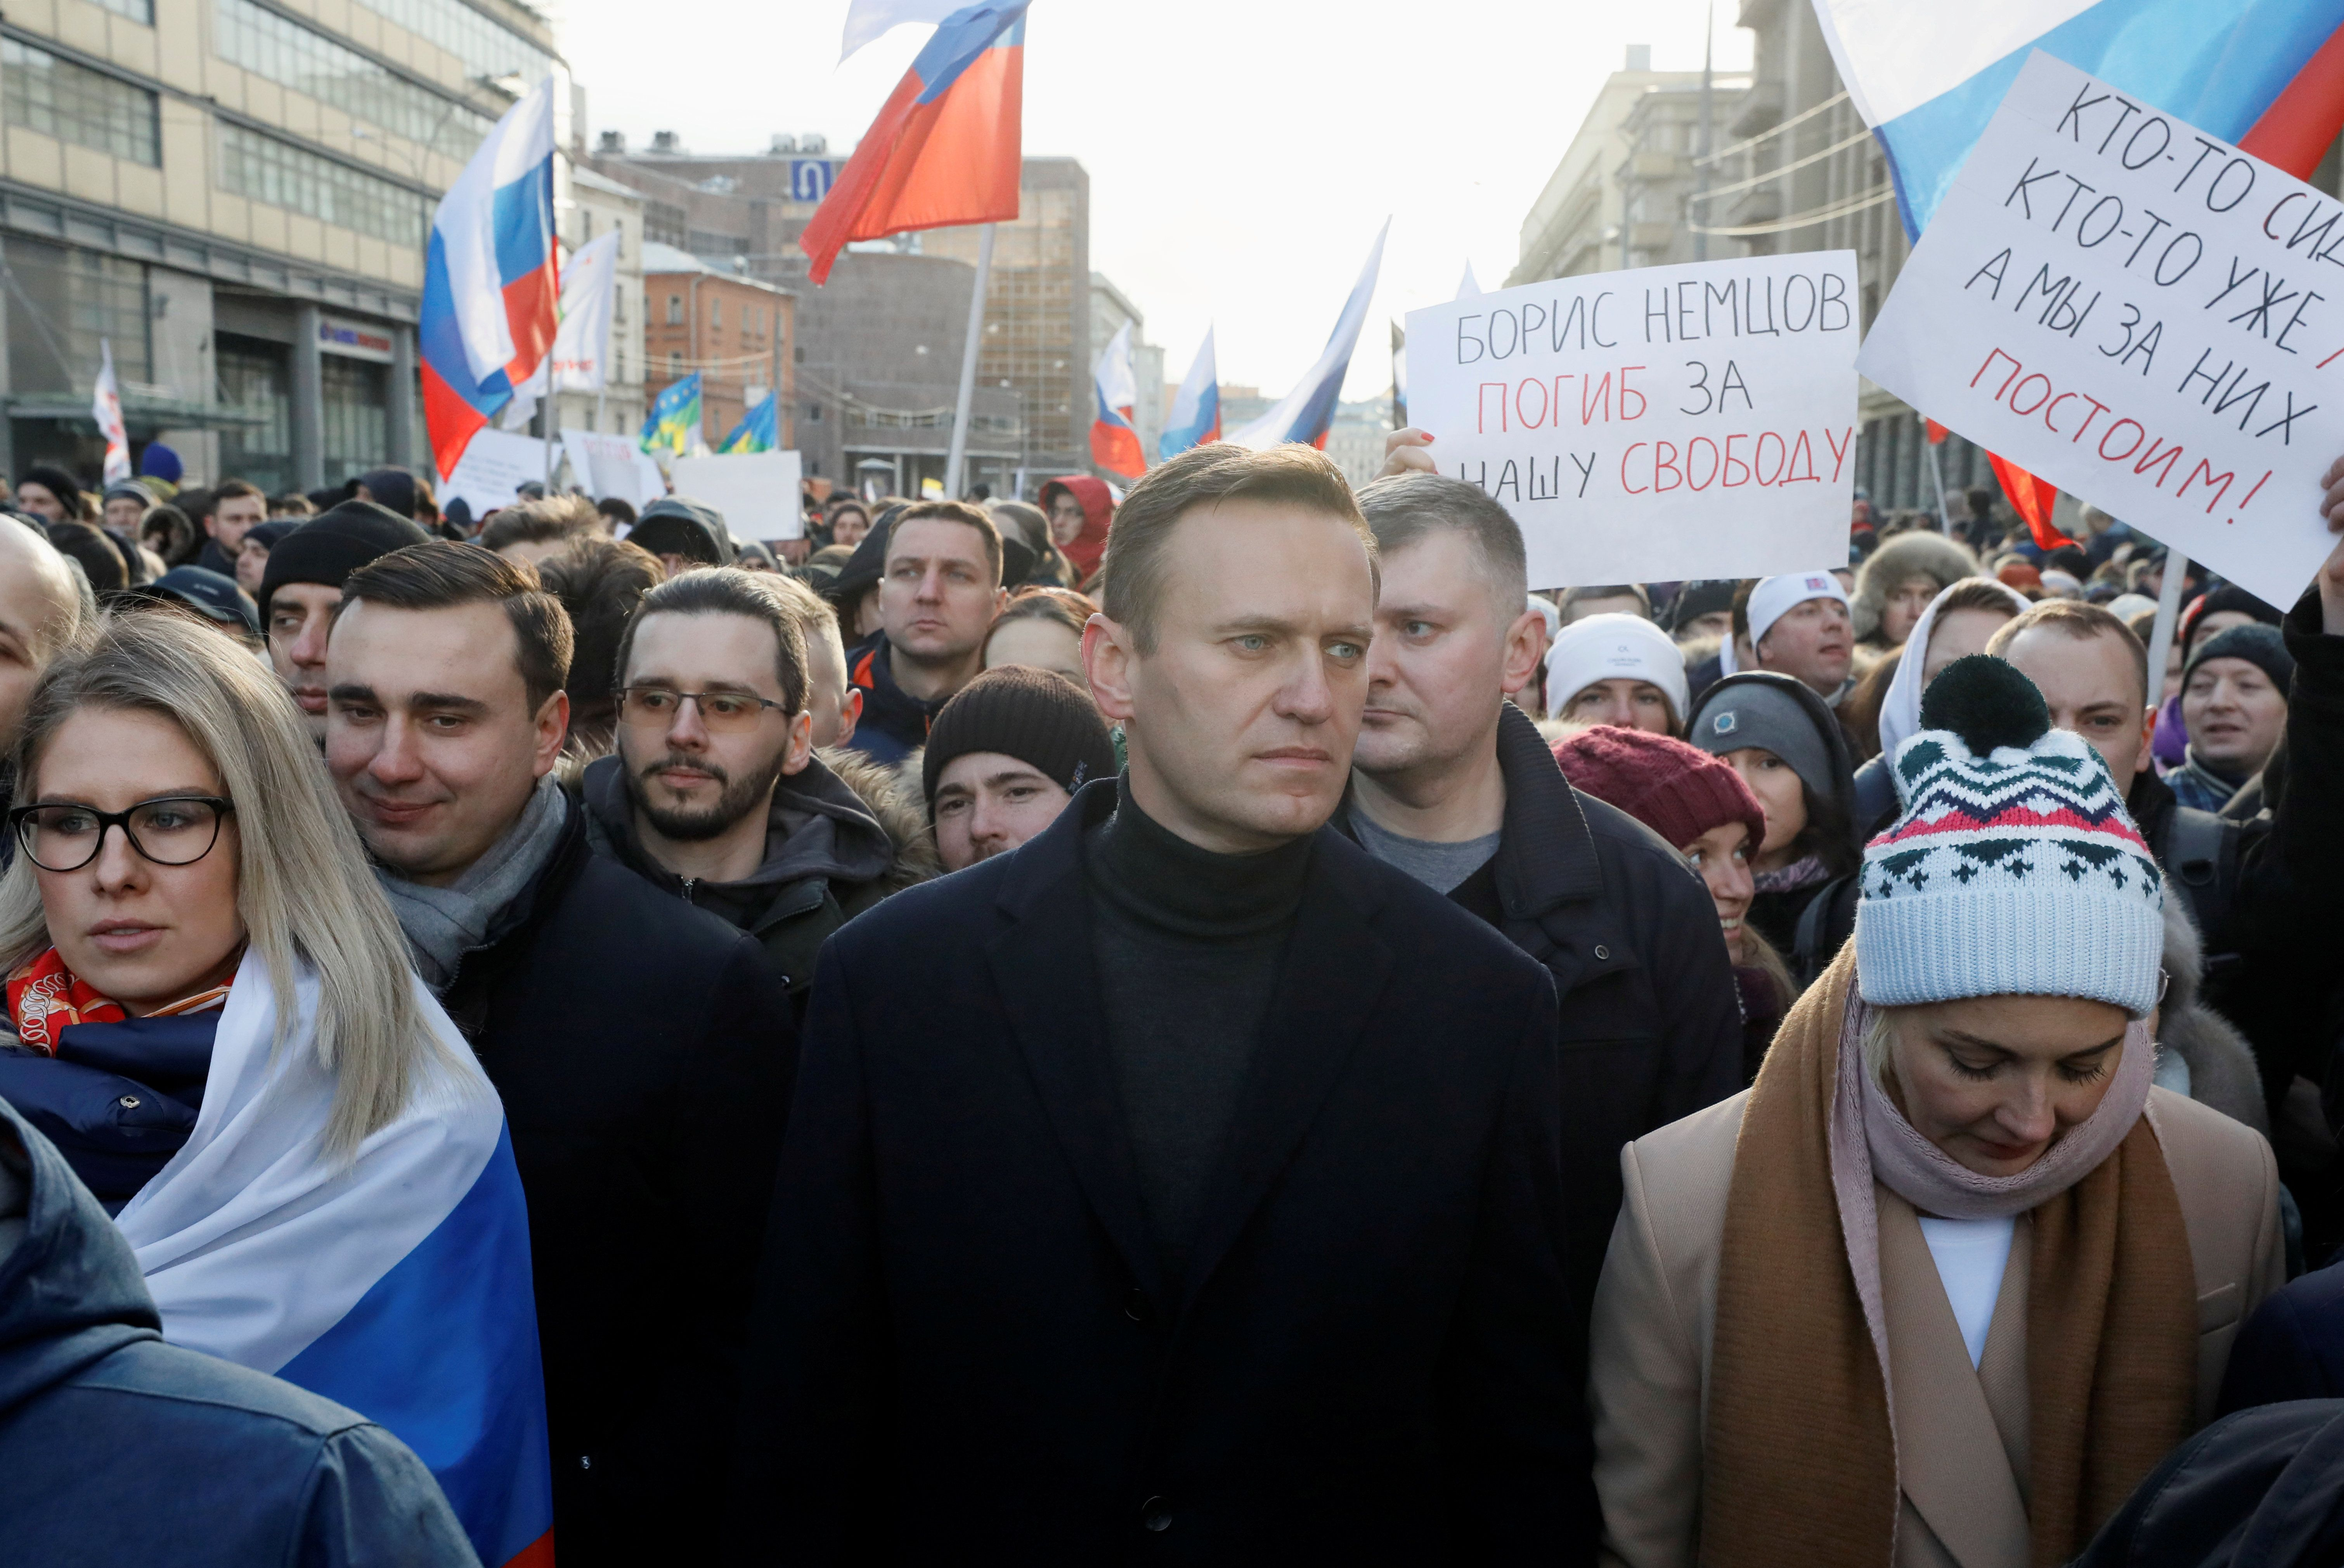 Russian opposition politician Alexei Navalny at a rally in Moscow.